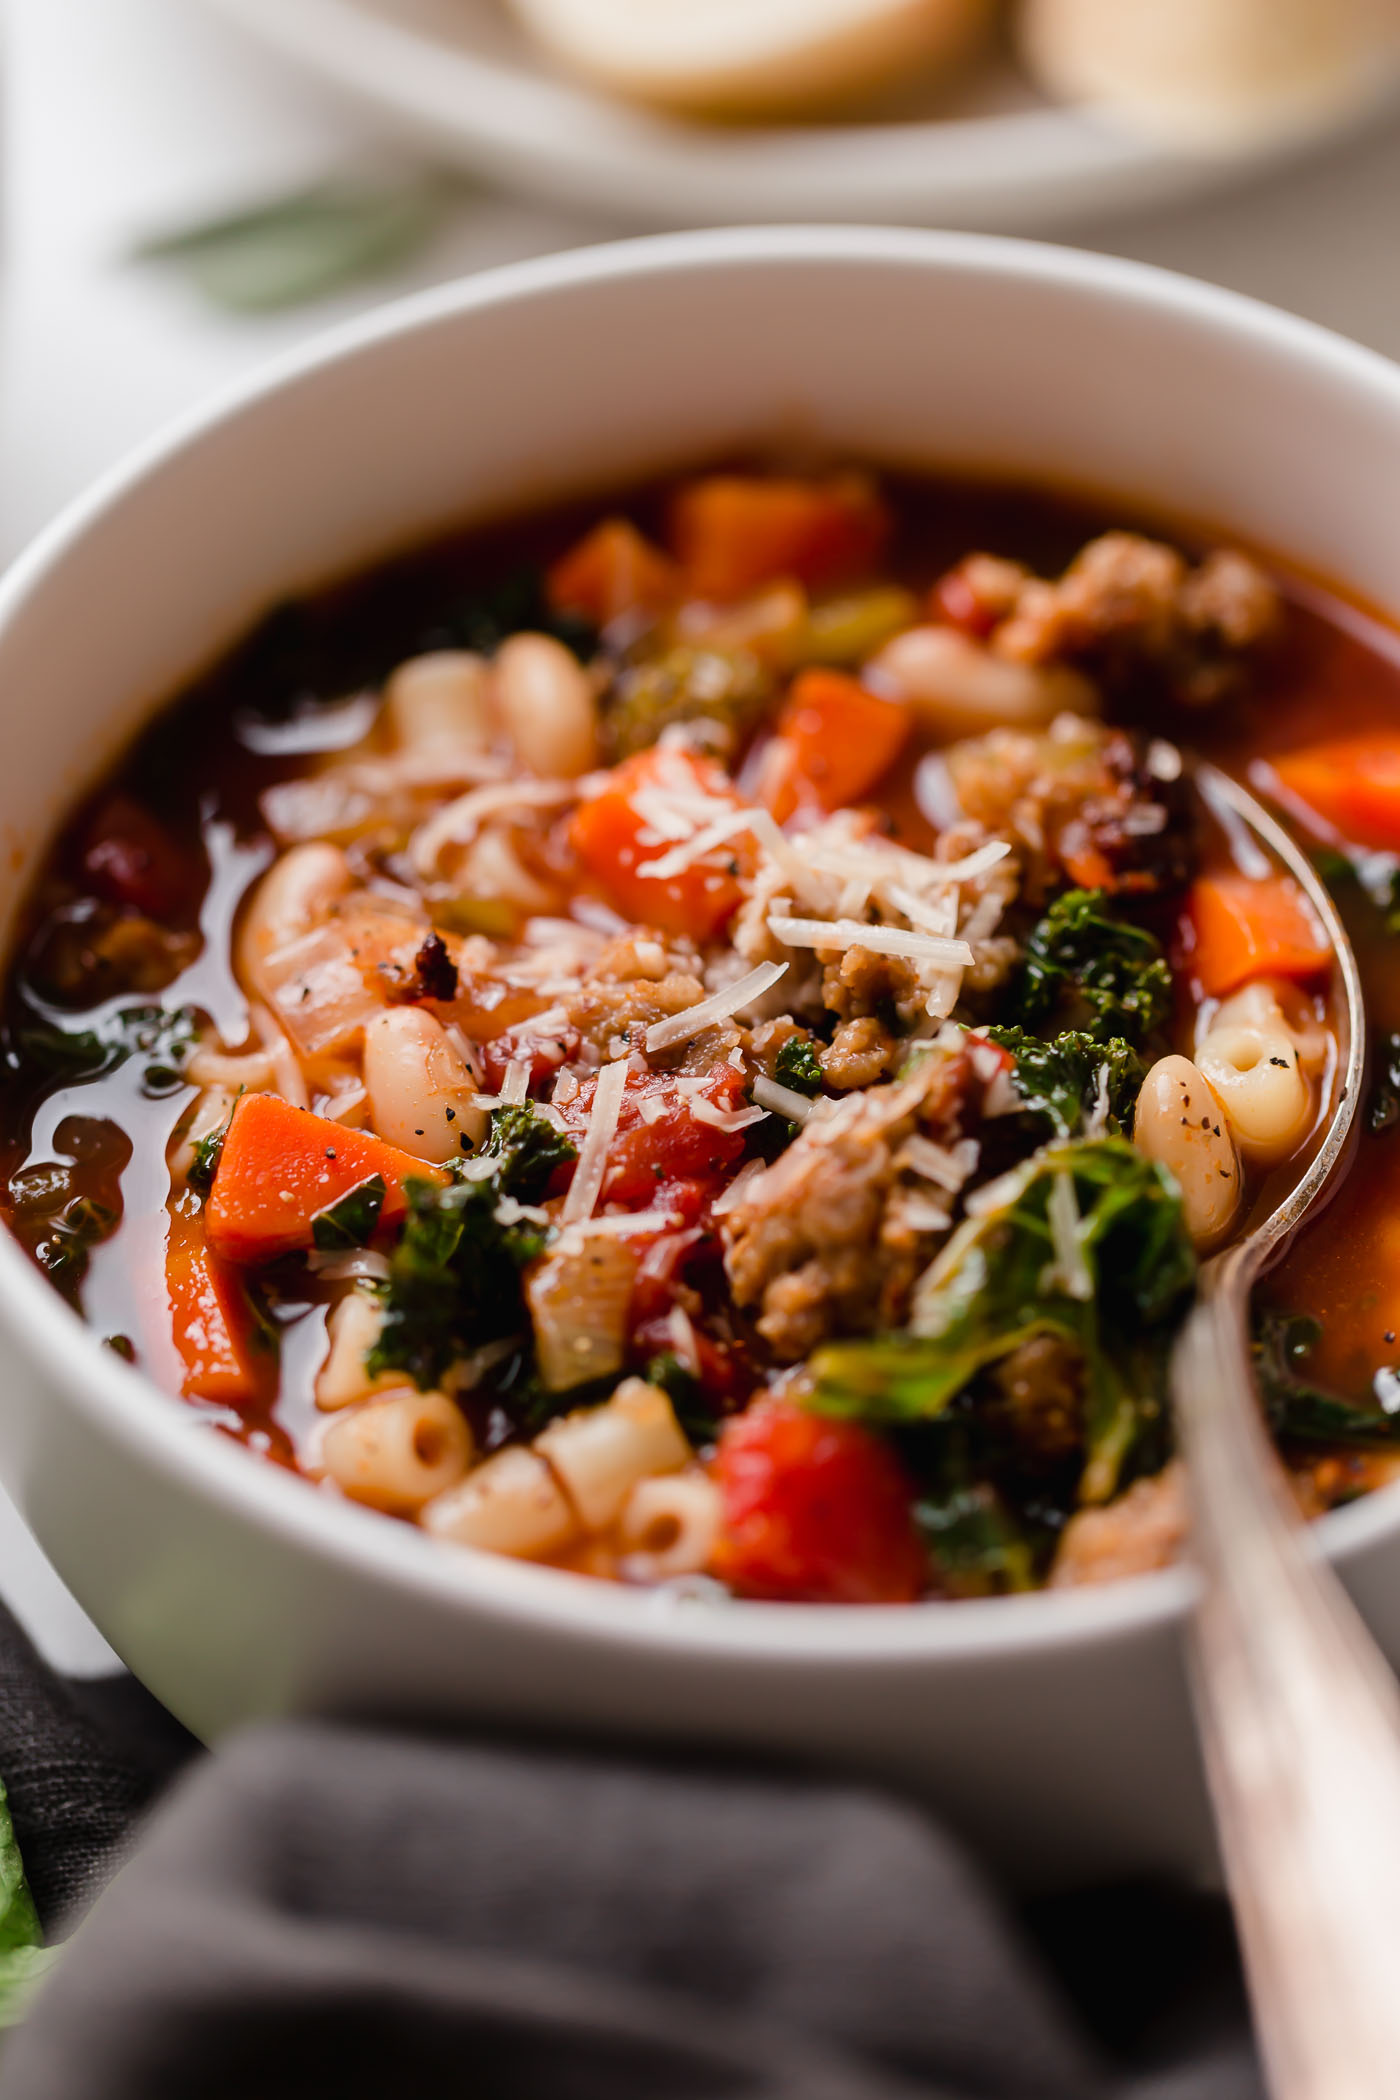 a hearty minestrone soup recipe, made with italian sausage, veggies, beans, kale, & a garlic & herb infused broth. this minestrone soup is comforting, rich, & the perfect cozy recipe to make all winter long. the ultimate minestrone soup! #playswellwithbutter #minestronesoup #heartysouprecipes #heartymeals #souprecipes #comfortfood #comfortfooddinners #soup #italianrecipes #italiansoup